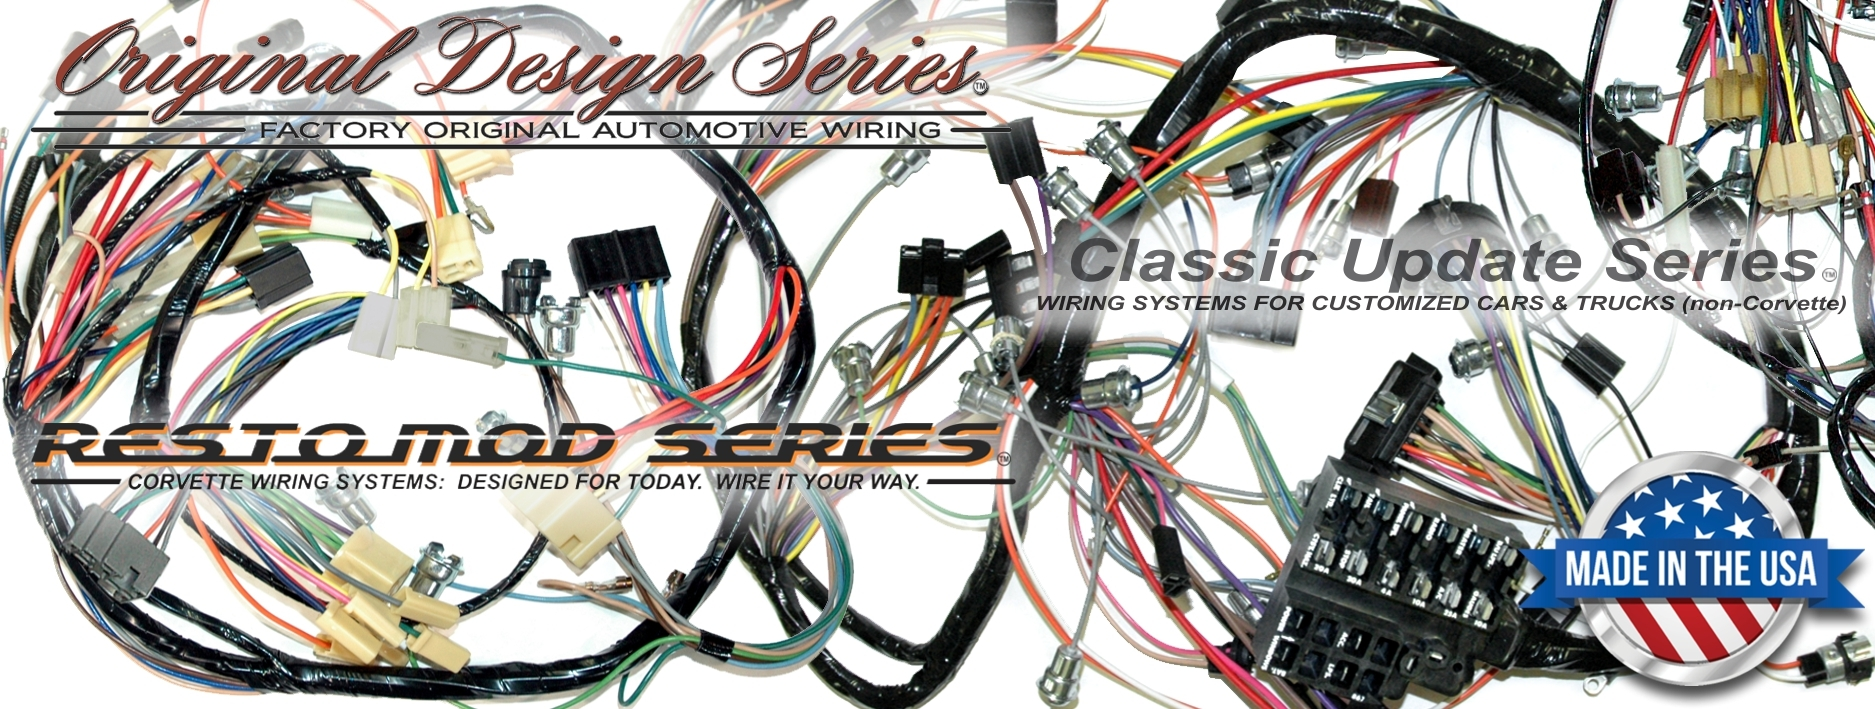 Exact OEM Reproduction Wiring Harnesses and RestoMod Wiring ... on